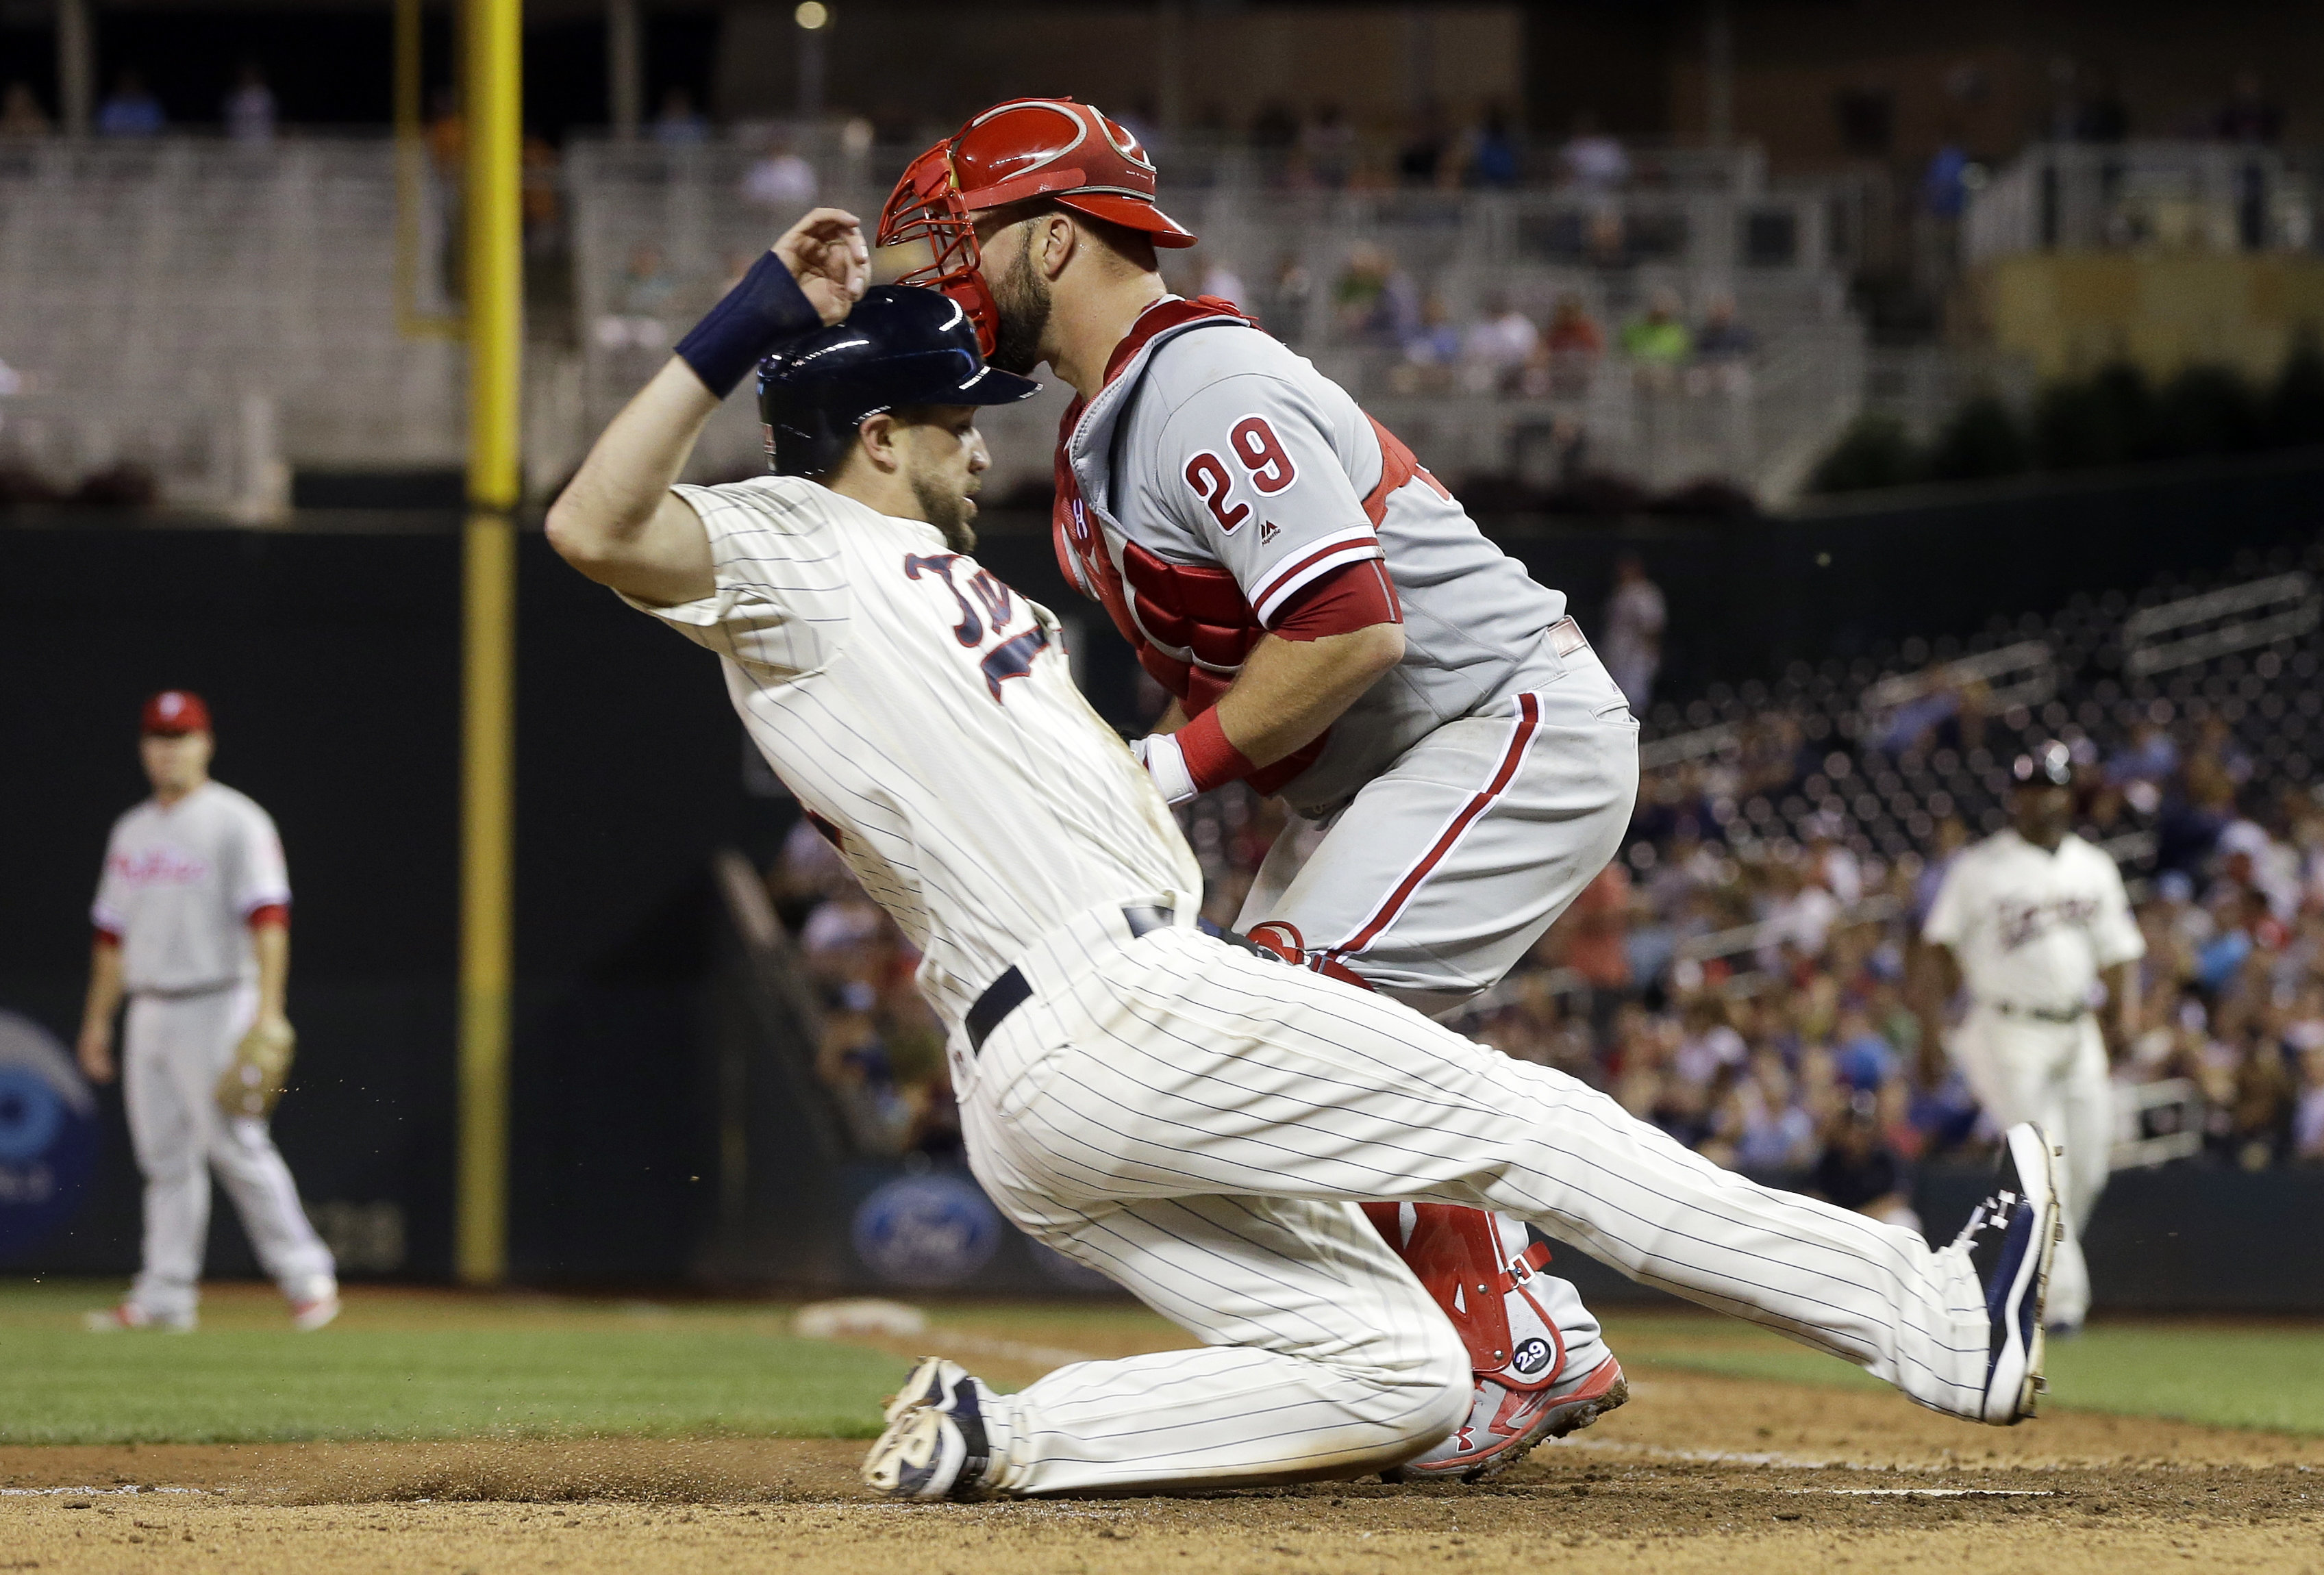 Minnesota Twins' Trevor Plouffe slides past Philadelphia Phillies catcher Cameron Rupp to score on a sacrifice fly by Max Kepler during the seventh inning of a baseball game Wednesday, June 22, 2016, in Minneapolis. The Twins won 6-5. (AP Photo/Jim Mone)